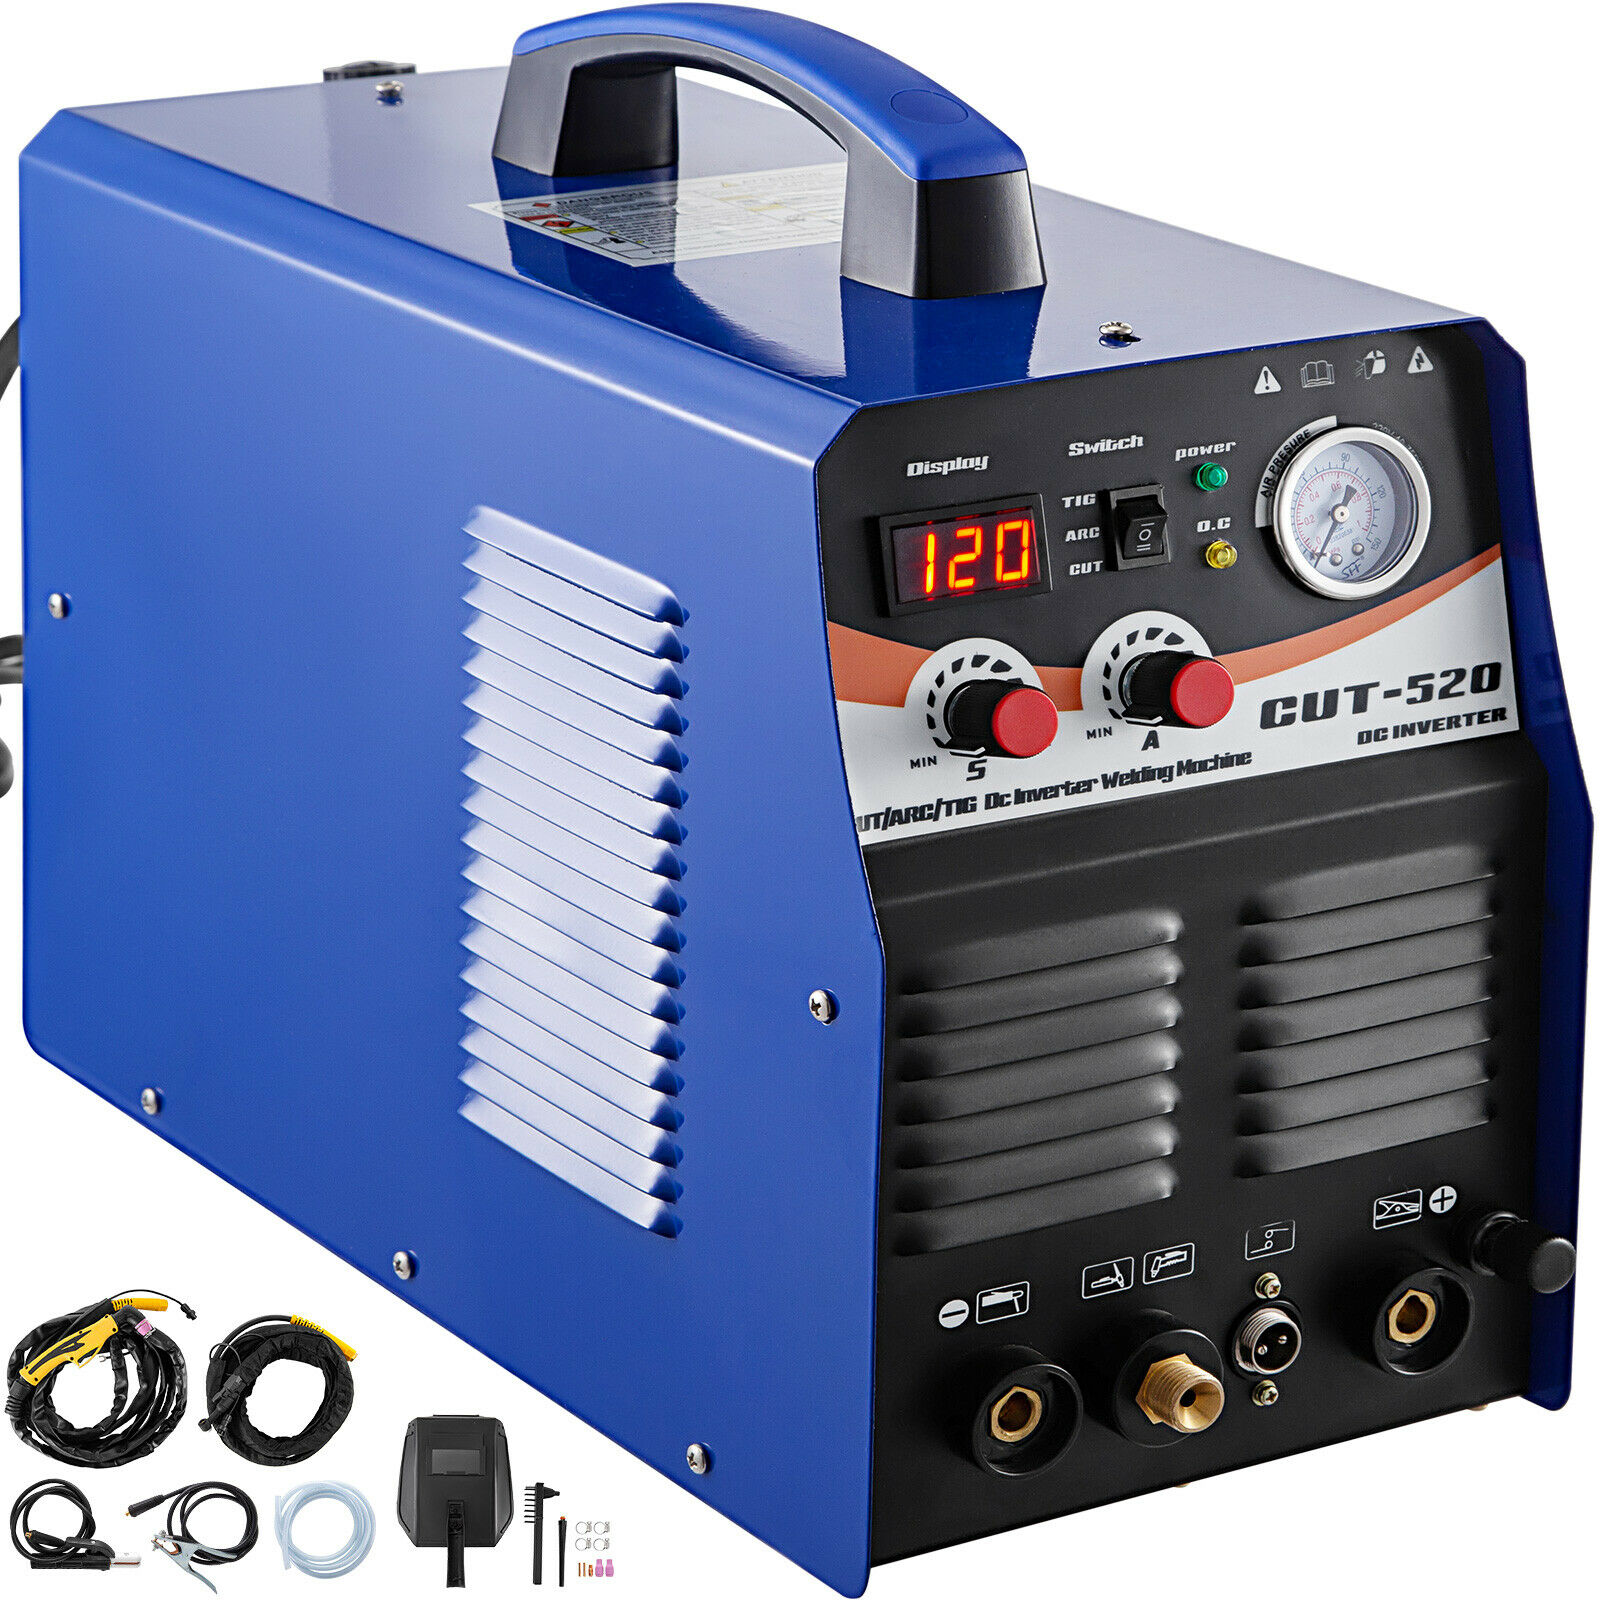 TIG/MMA Plasma Cutter CT520 3 In 1 Combo Welding Machine Tig Welder 200A Arc Welder 200A Plasma Cutter 50A 110V 220V